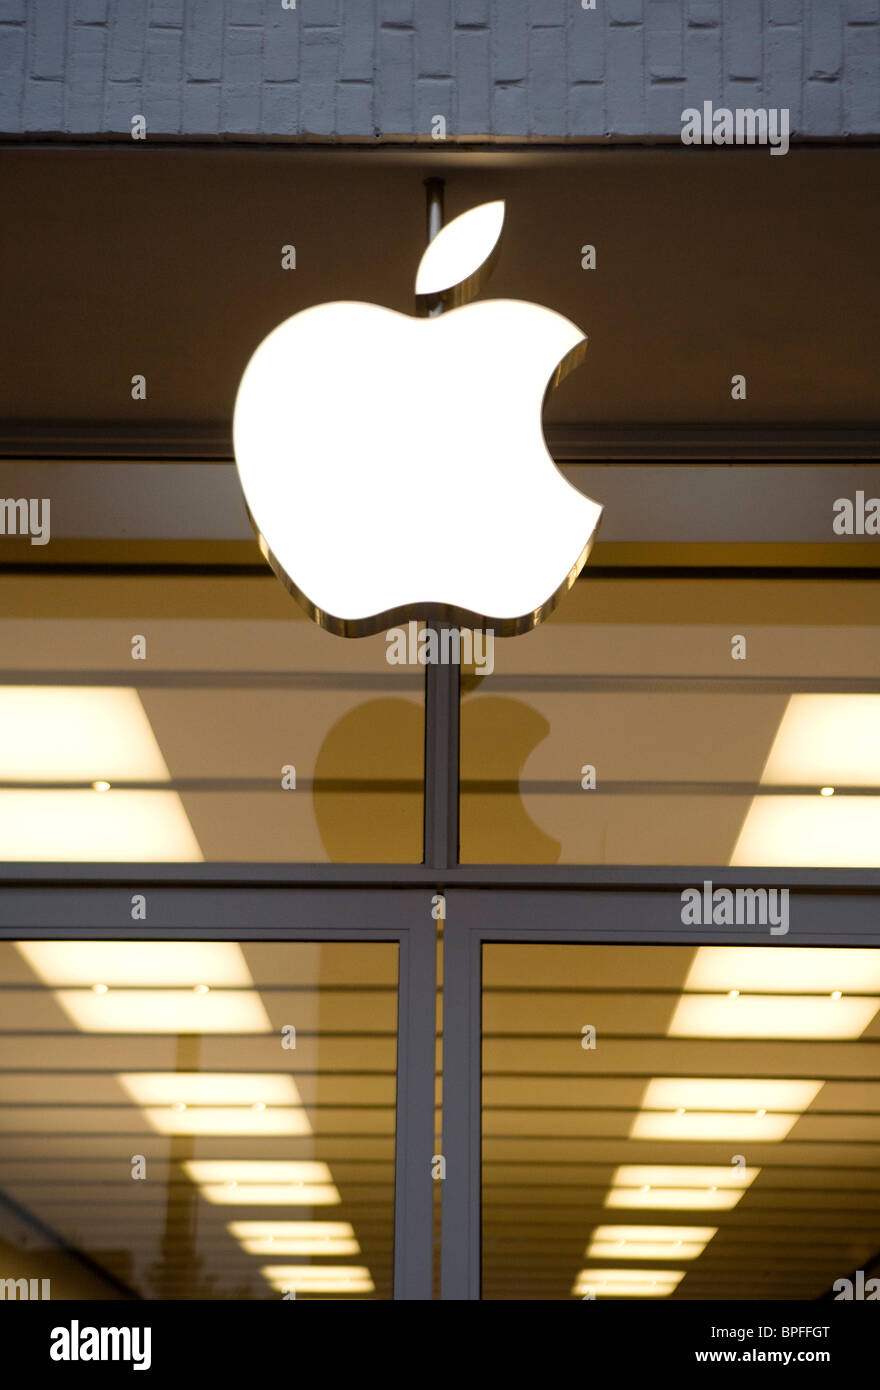 A Apple retail store in Washington, DC. Stock Photo